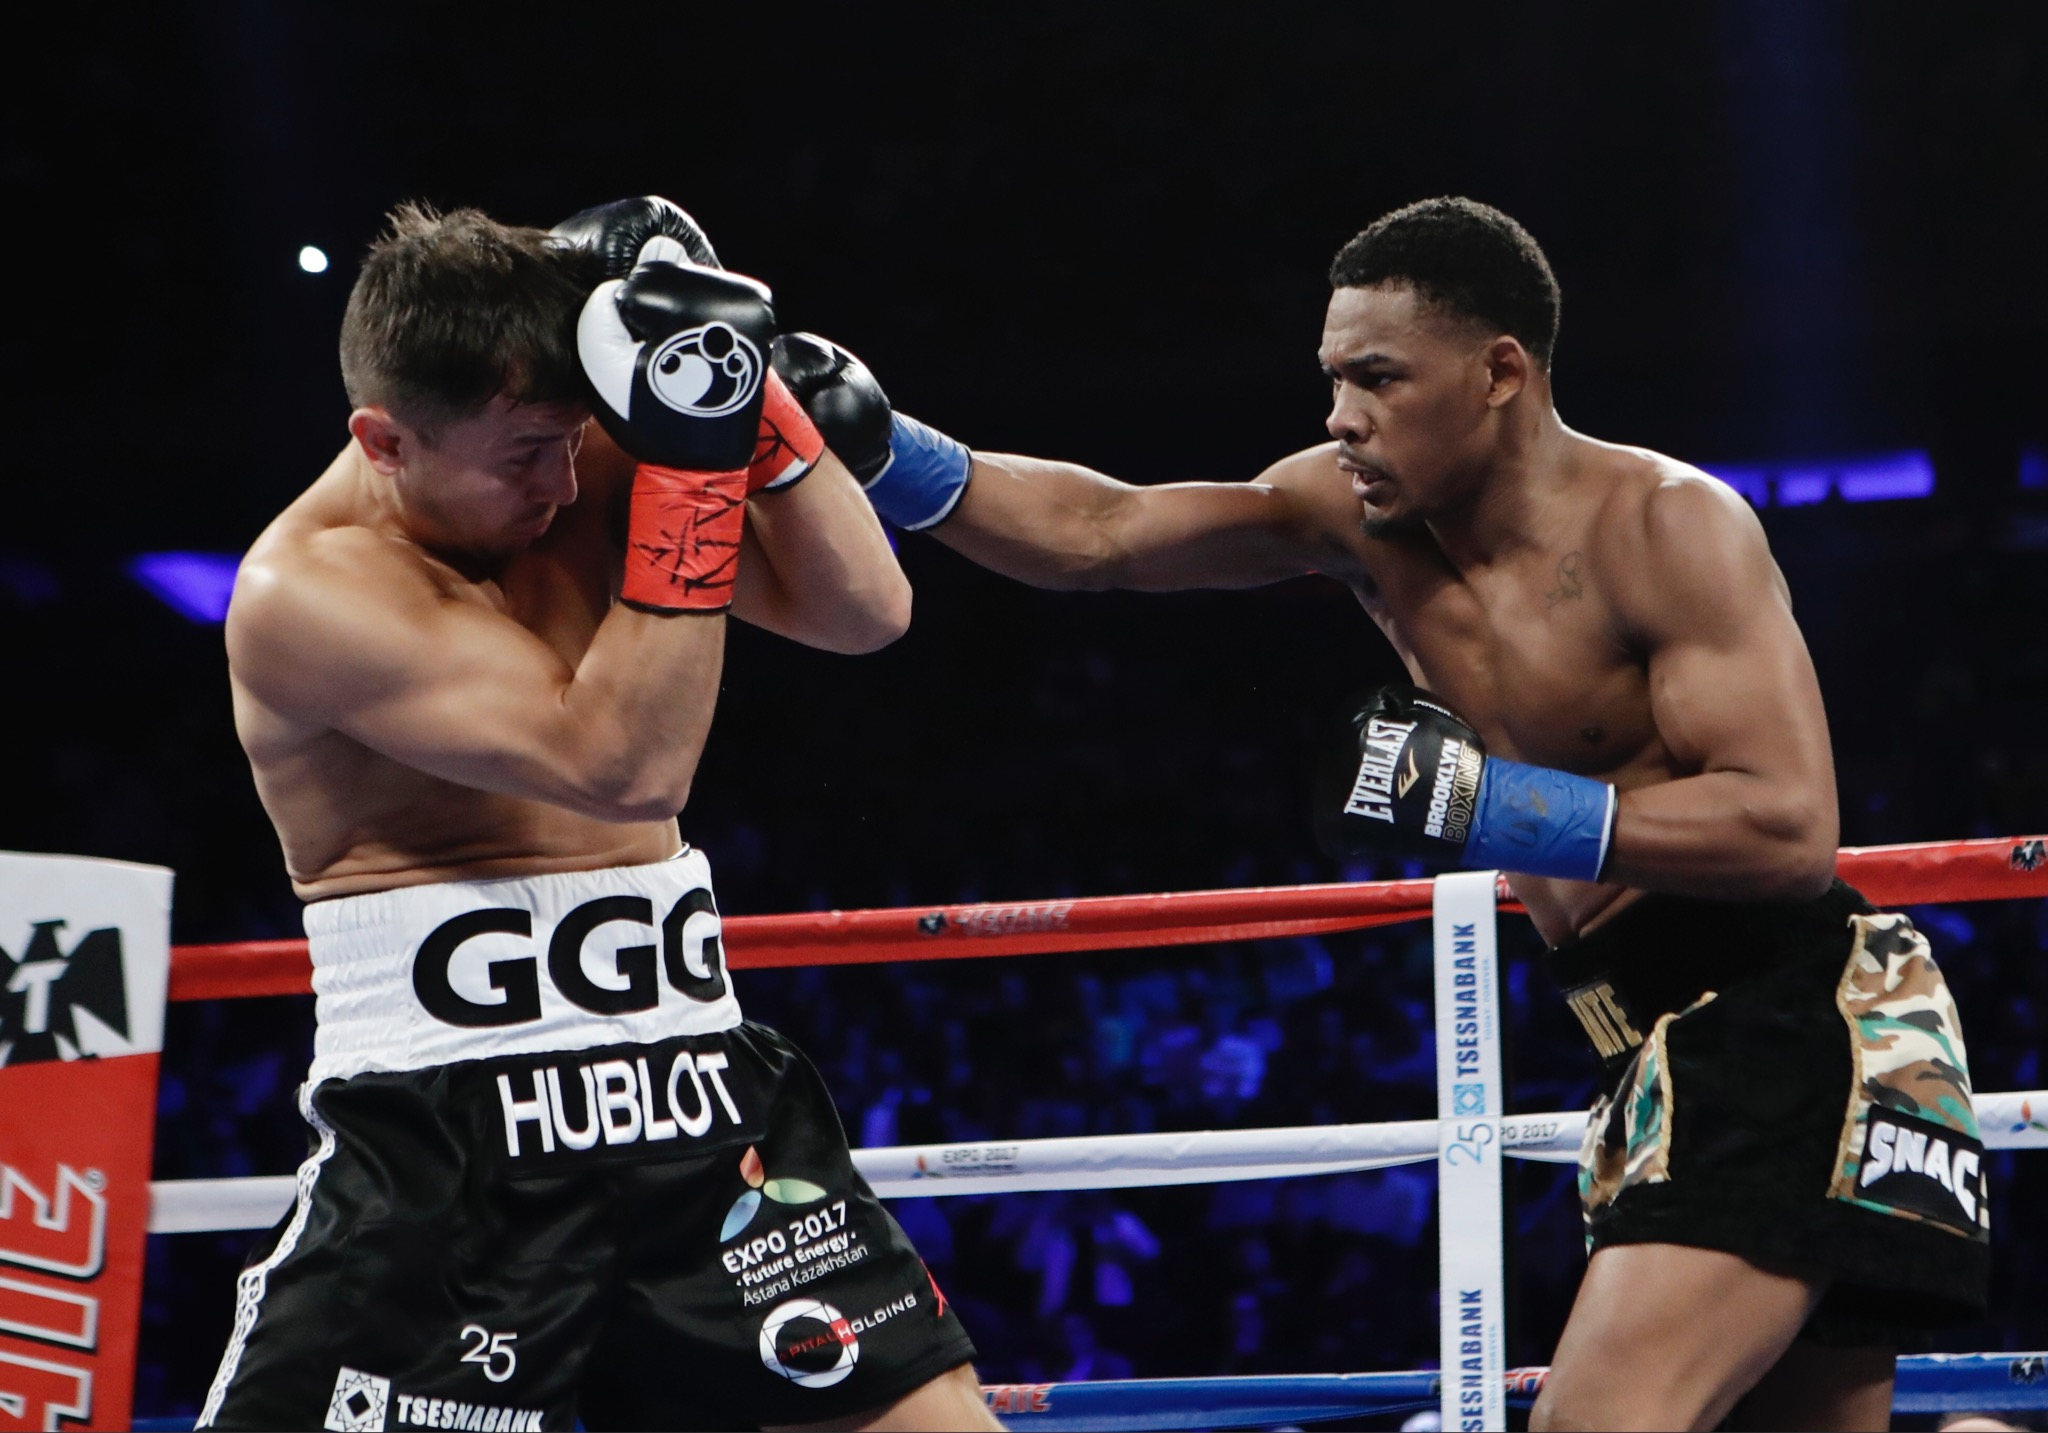 Daniel Jacobs, right, punches Gennady Golovkin, of Kazakhstan, during the first round of their middleweight boxing match early Sunday, March 19, in New York. (AP Photo/Frank Franklin II)